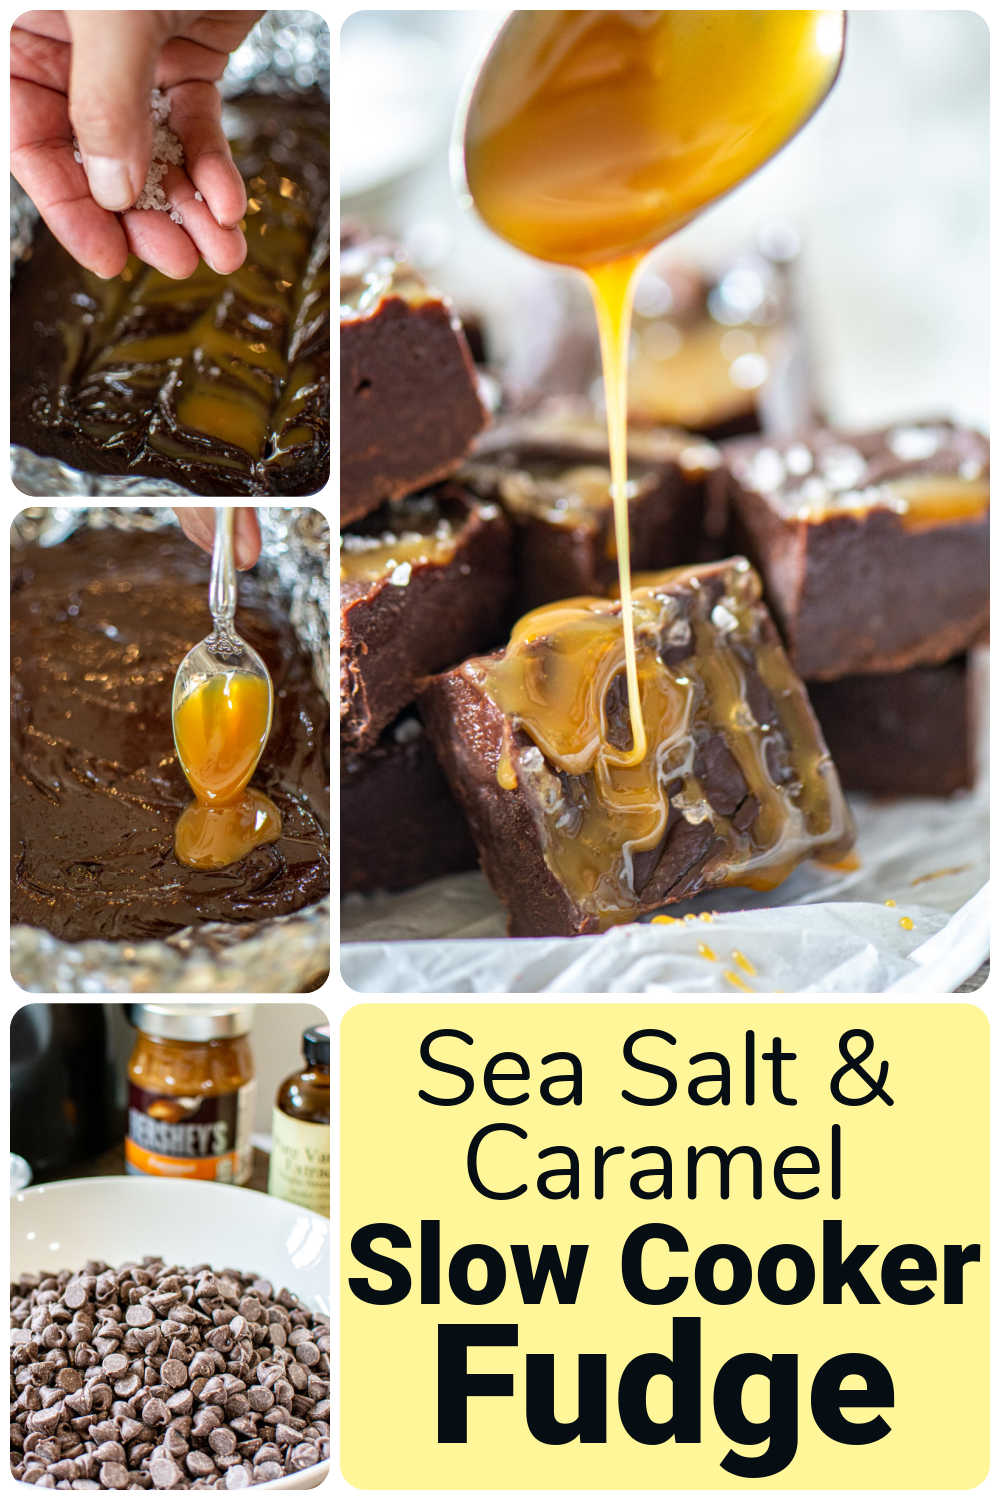 Slow Cooker Fudge with Sea Salt and Caramel